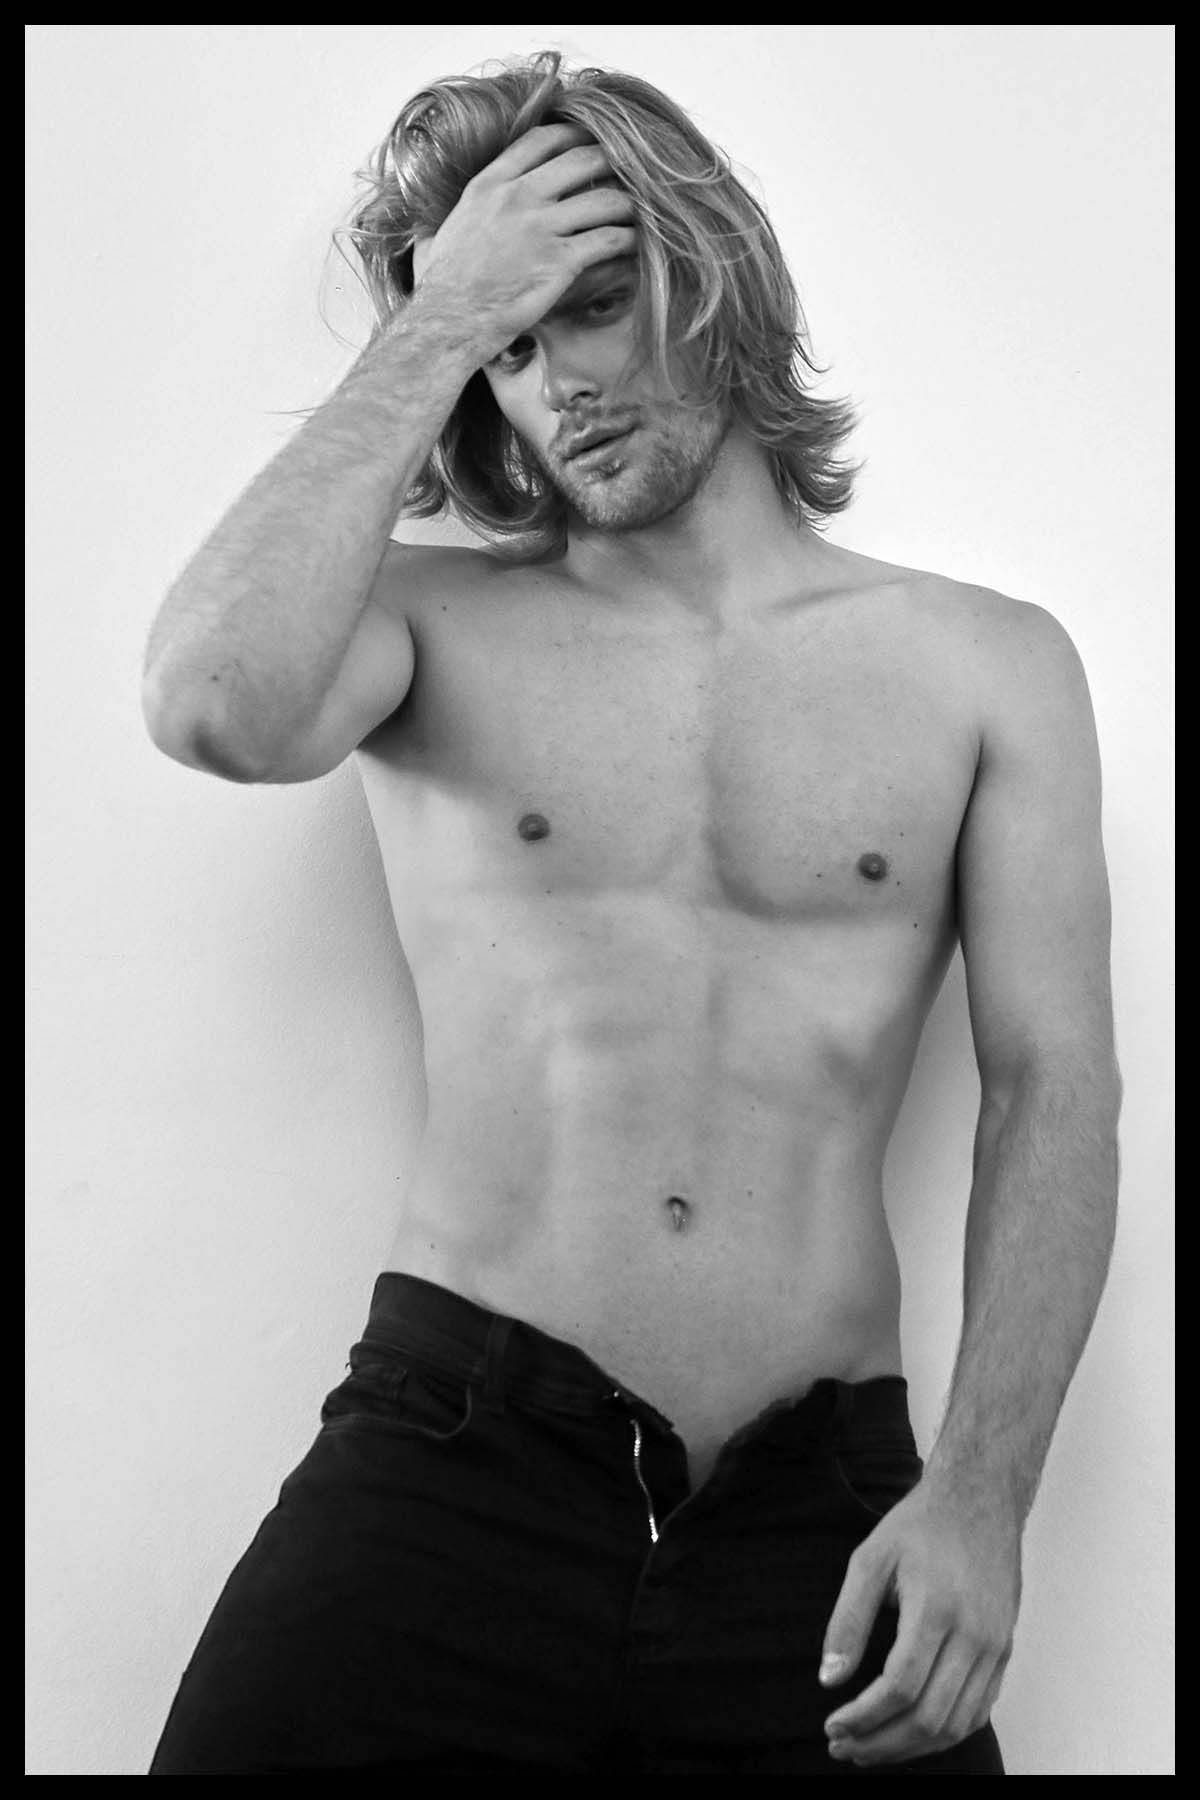 William Fink by Anderson Bruno for Brazilian Male Model